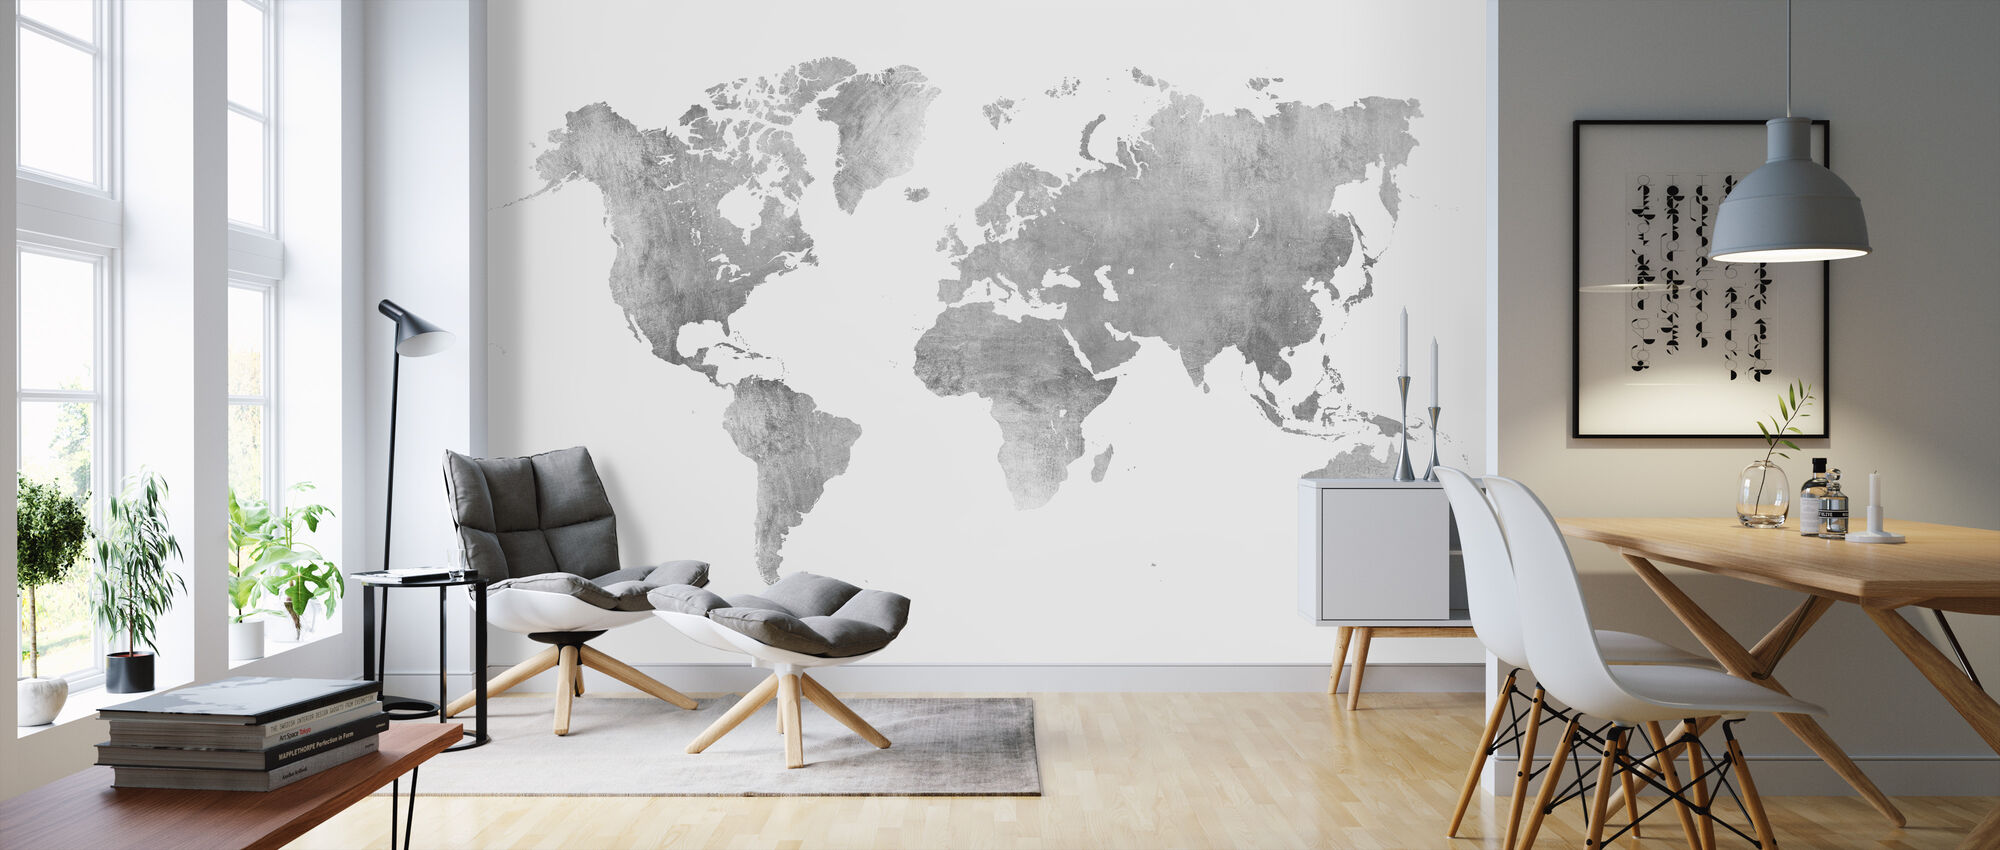 World Map Brushed Metal II - Wallpaper - Living Room